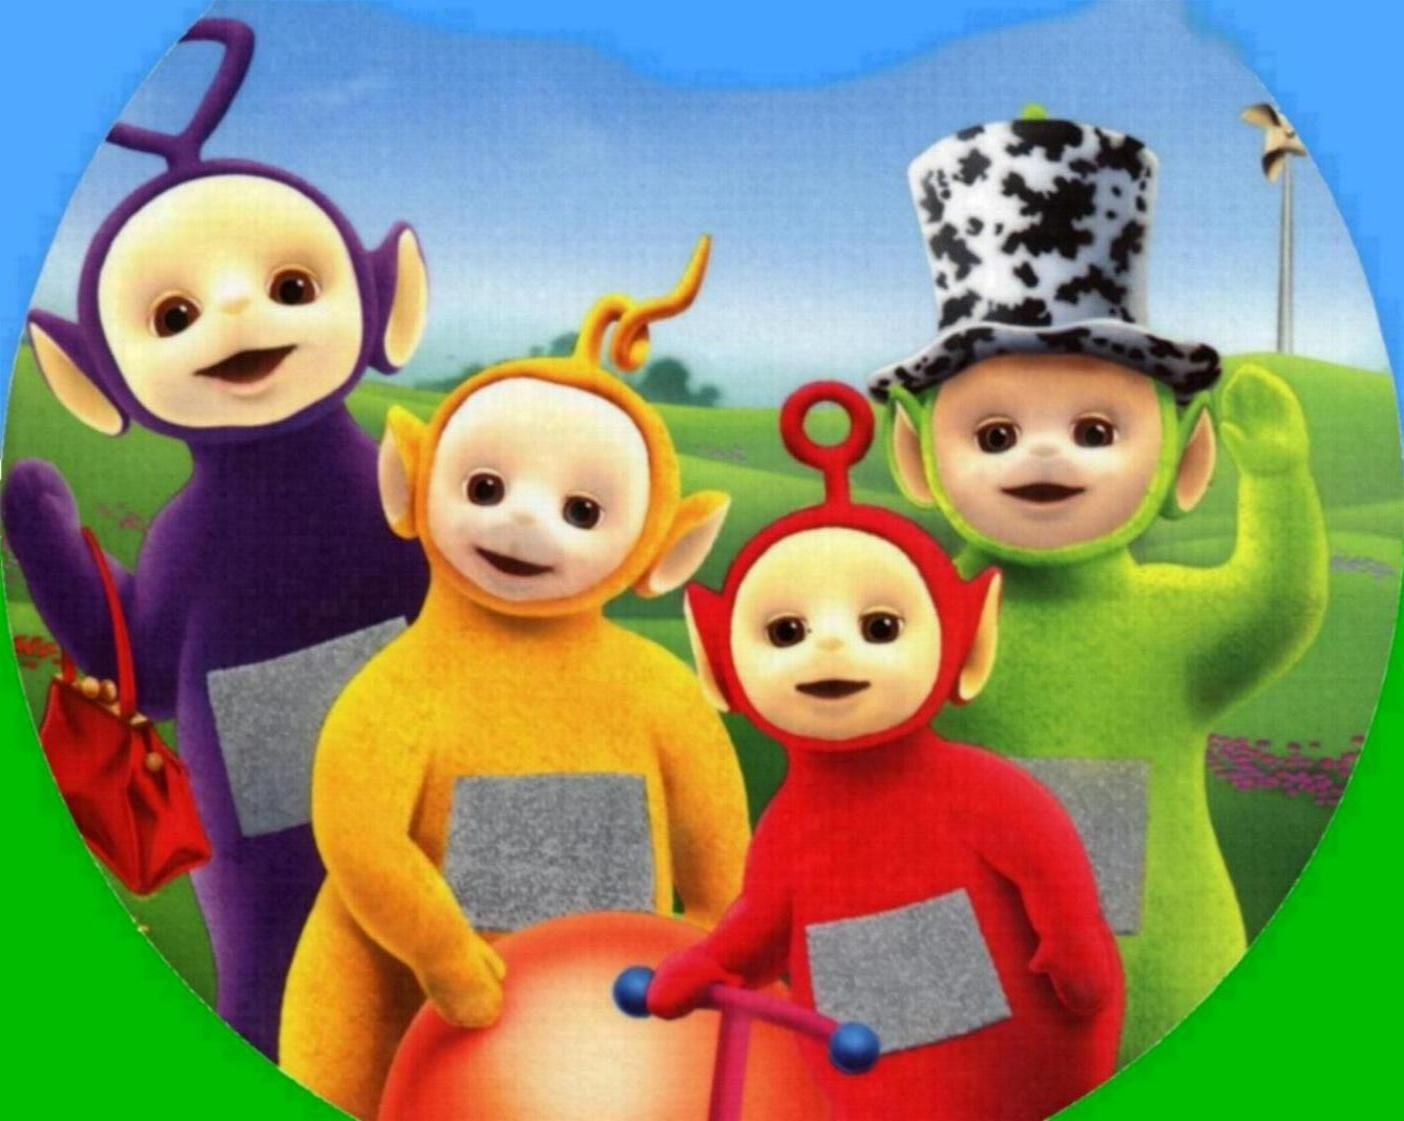 Pin By Vili Ohra Aho On Teletapit In 2020 Teletubbies Cartoon Kids Shows